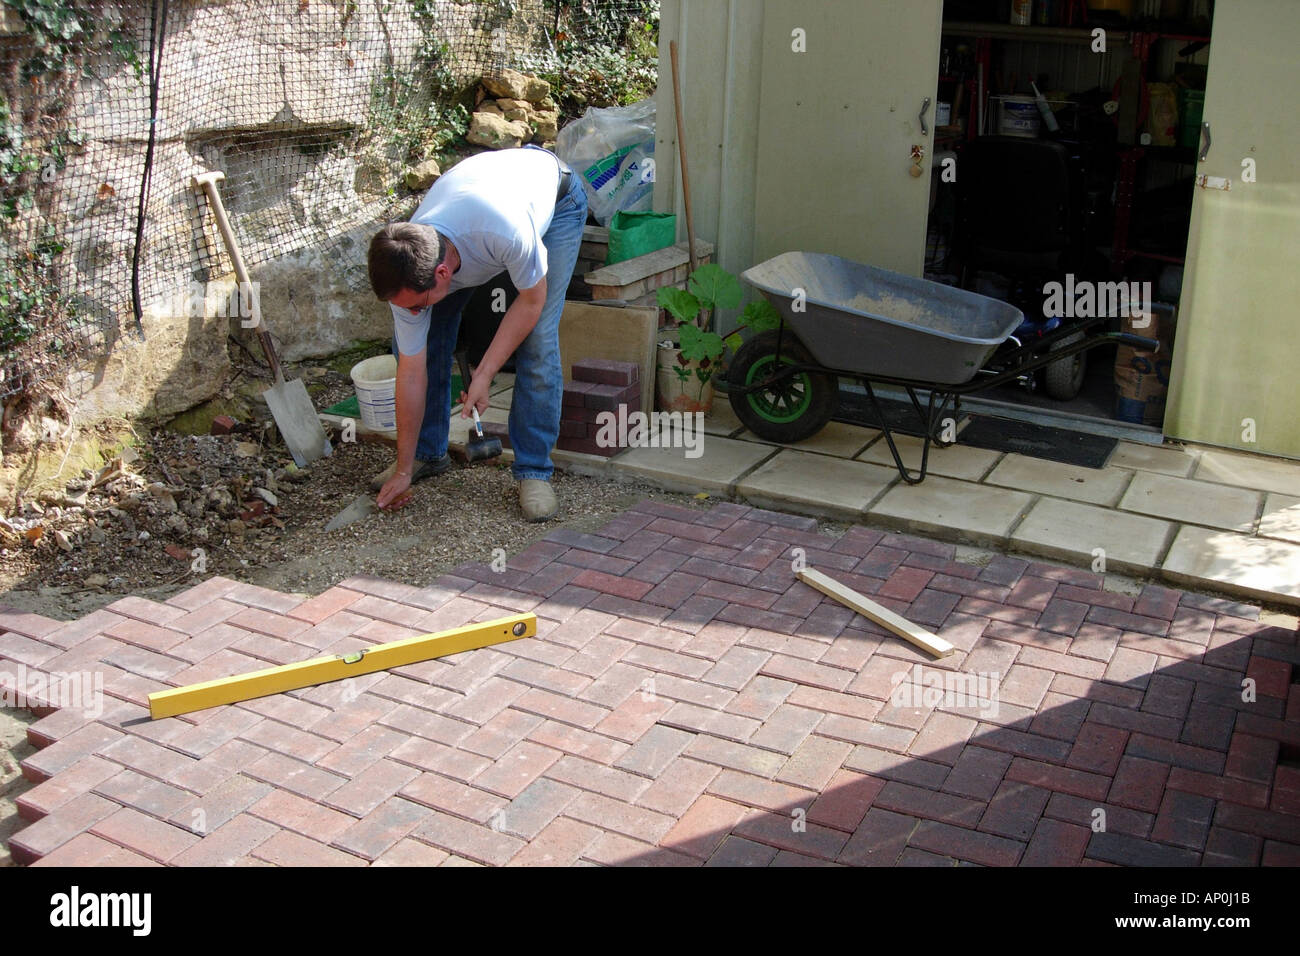 A Construction Worker Laying A Patio Using Block Paving Bricks